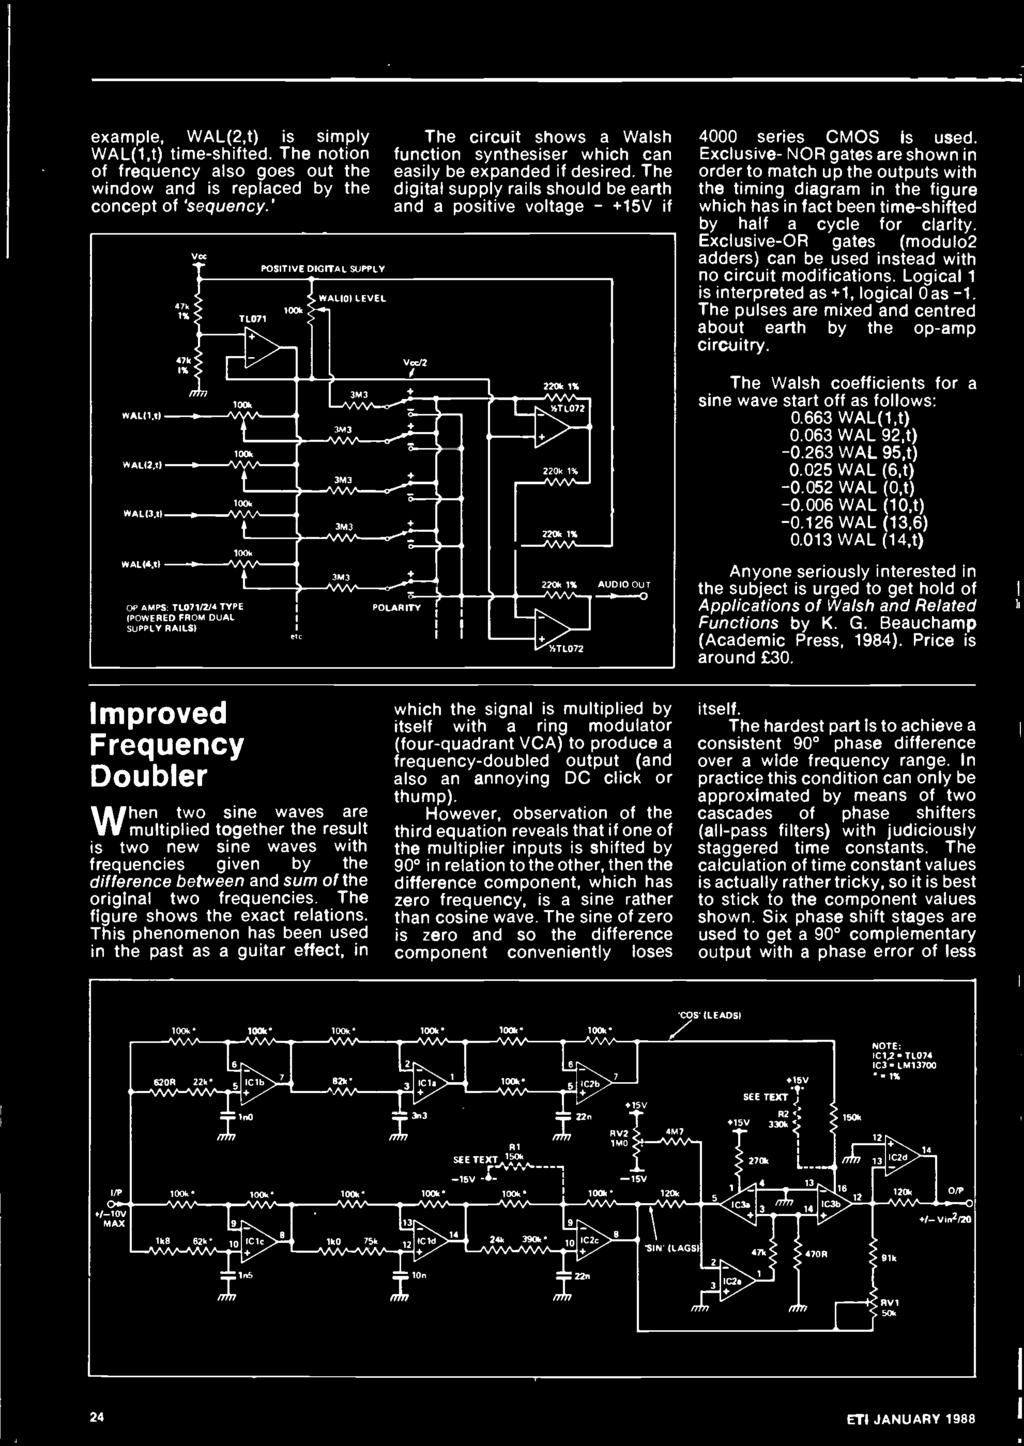 Satellite Tv A Down To Earth Guide Pdf Induction Cooker Circuit Signalprocessing Diagram Exclusive Or Gates Modulo2 Adders Can Be Used Instead With No Modifications